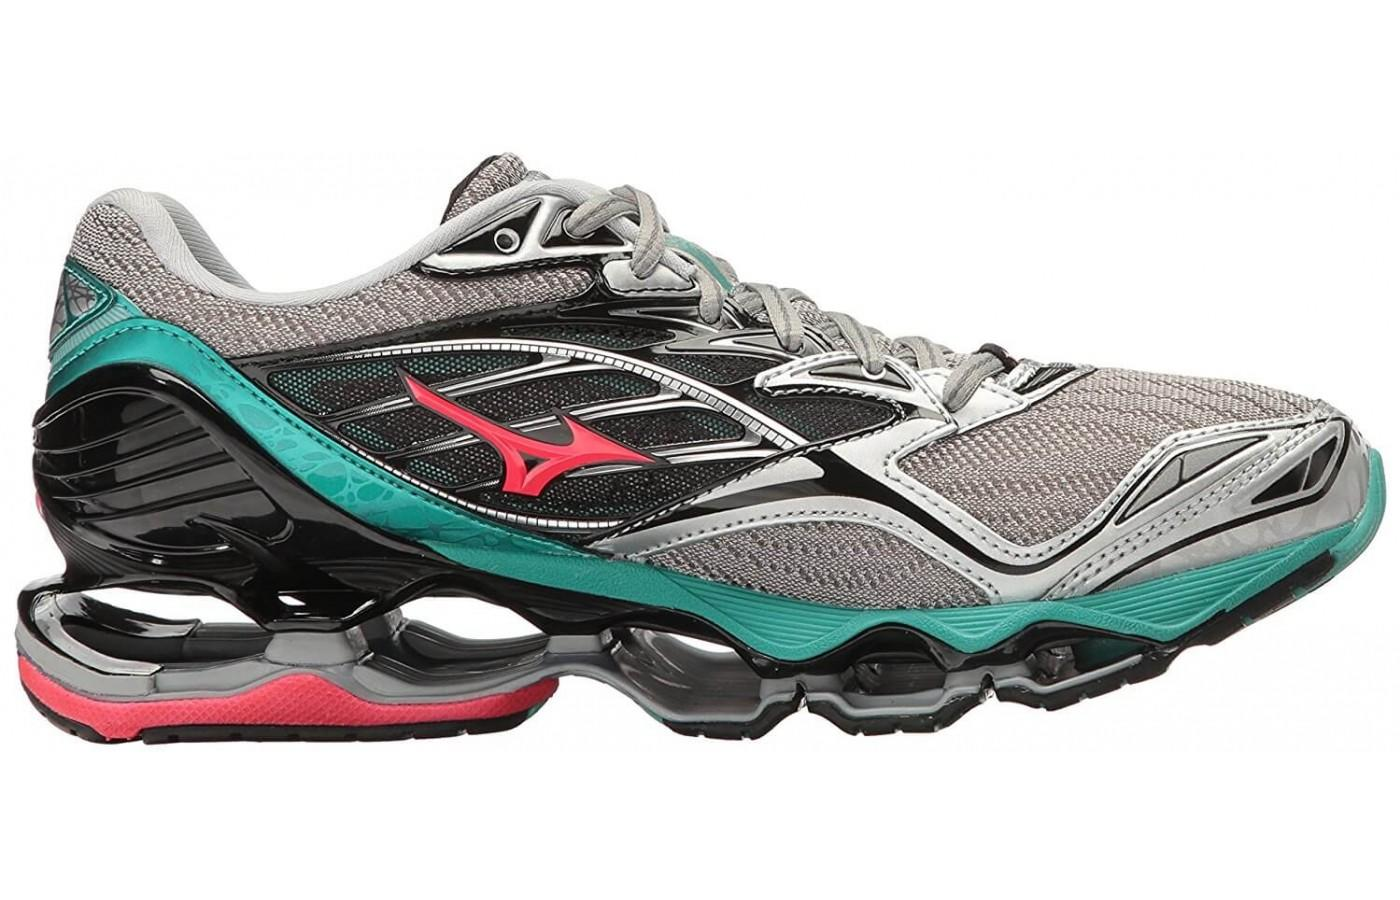 The innovative Infinity Wave midsole offers a comfortable ride,